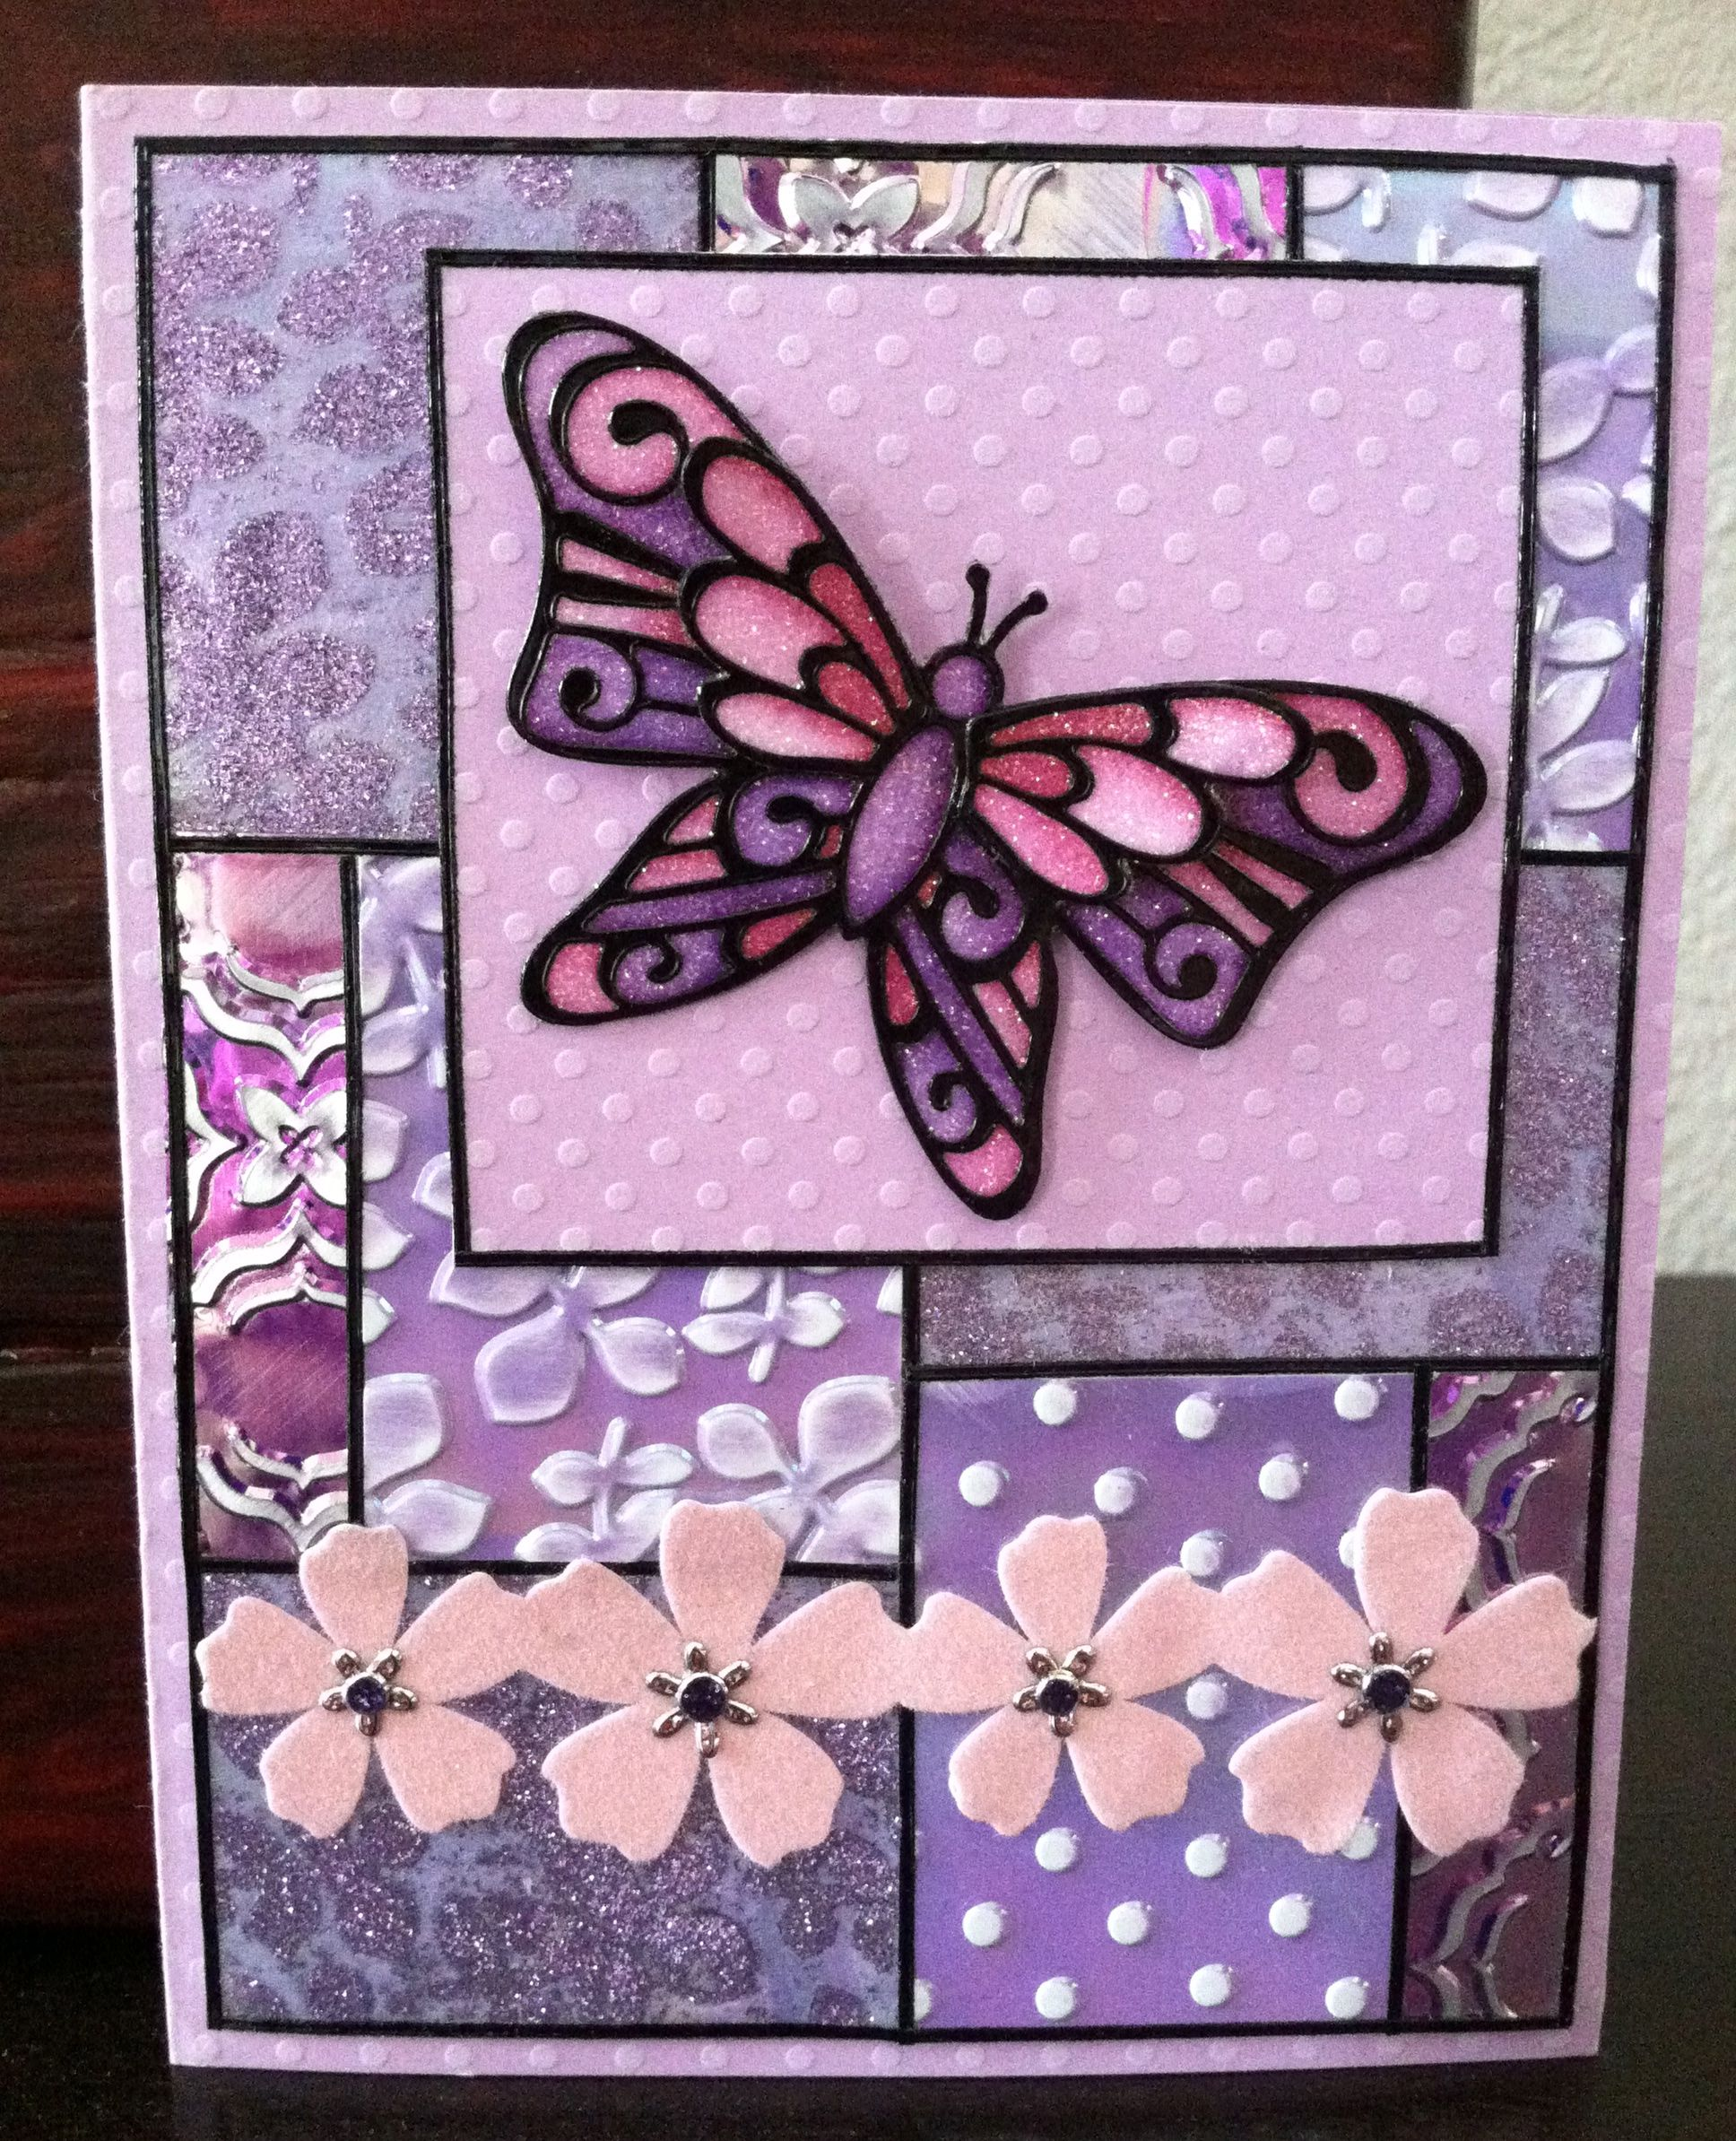 Sticky paper for crafts - This Card Is A Combination Of All The Elizabeth Craft Designs Products Peel Off Stickers